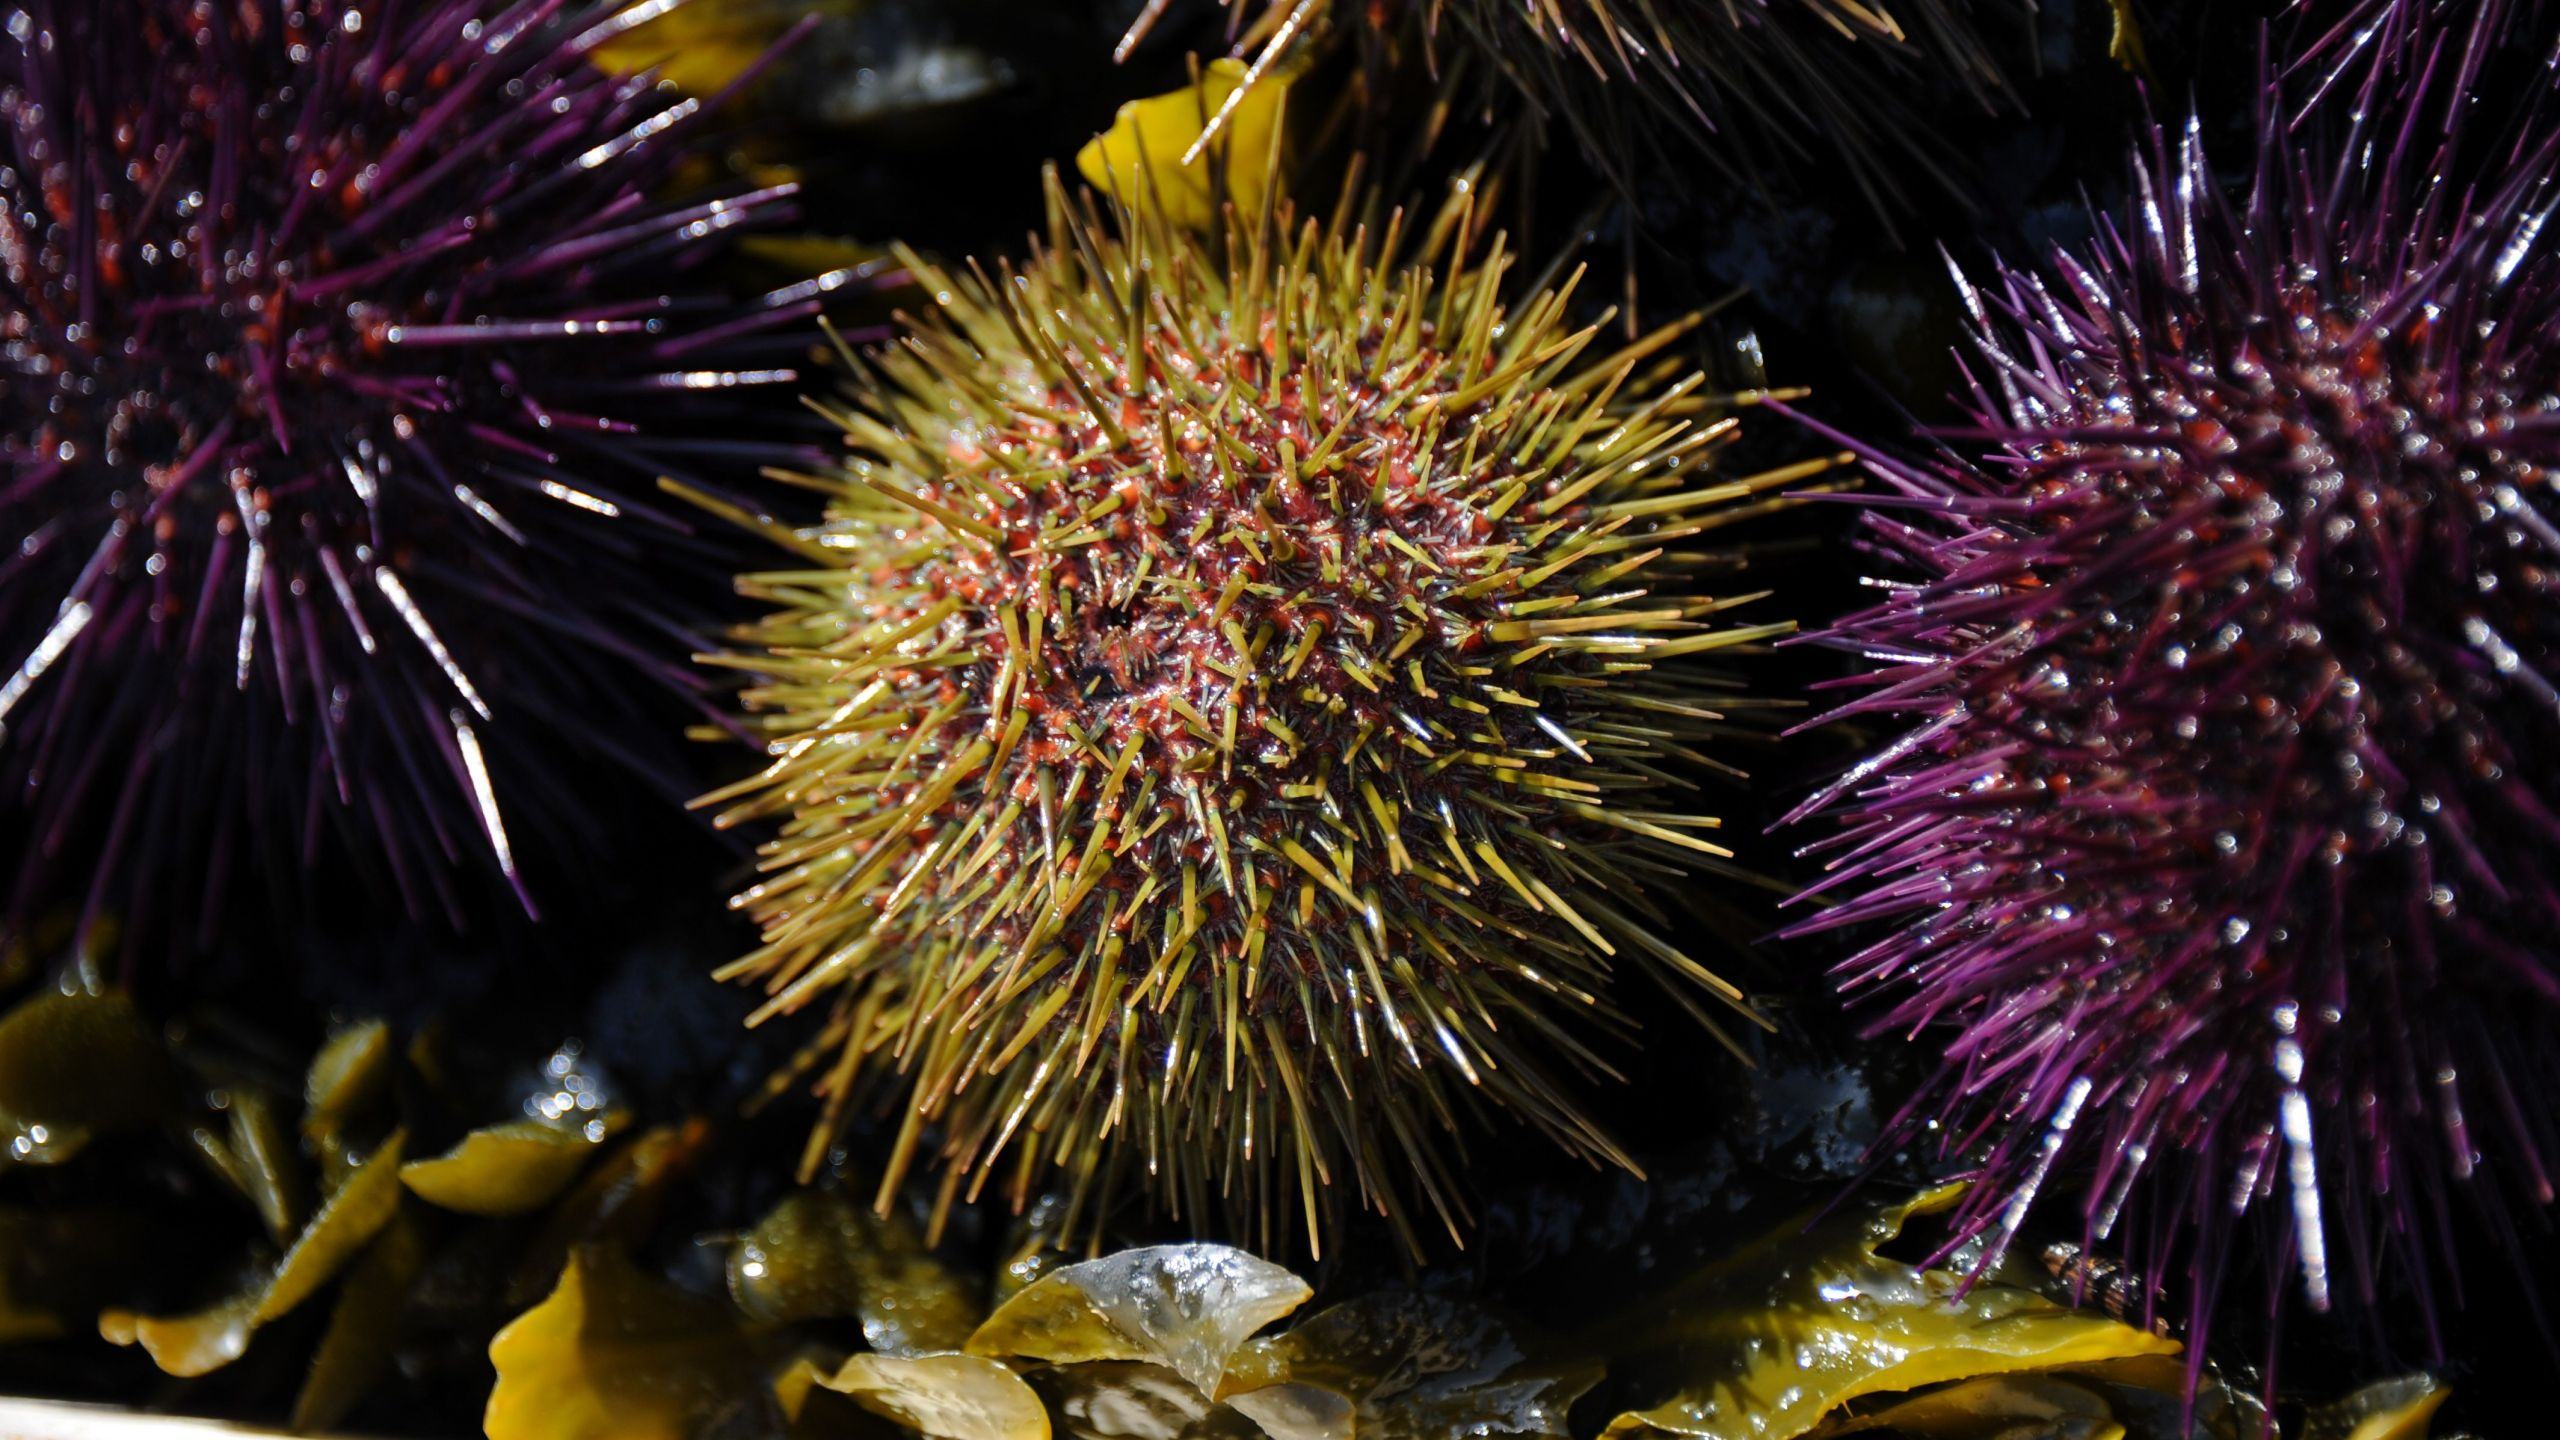 A photo from March 18, 2015 shows purple and green sea urchins in La Flotte-en-Re, France. (Credit: XAVIER LEOTY/AFP/Getty Images)